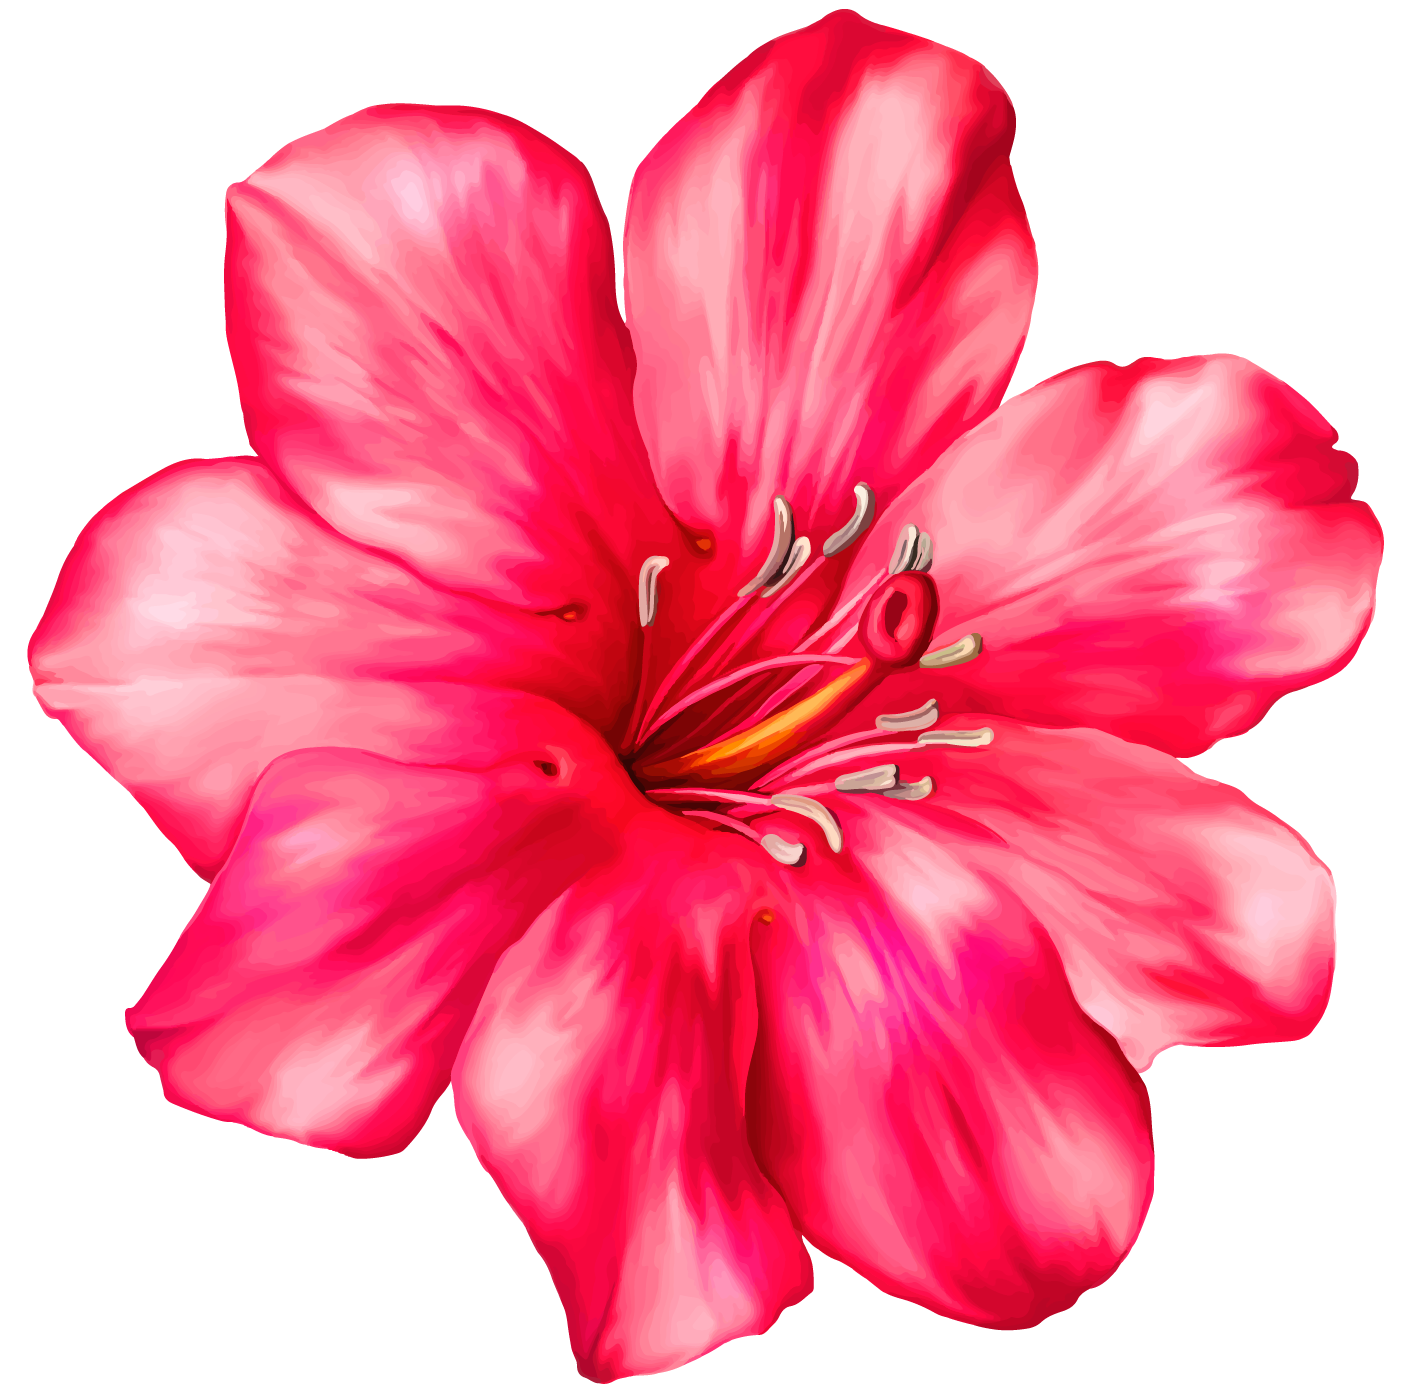 Tropical flowers png. Exotic pink flower clipart